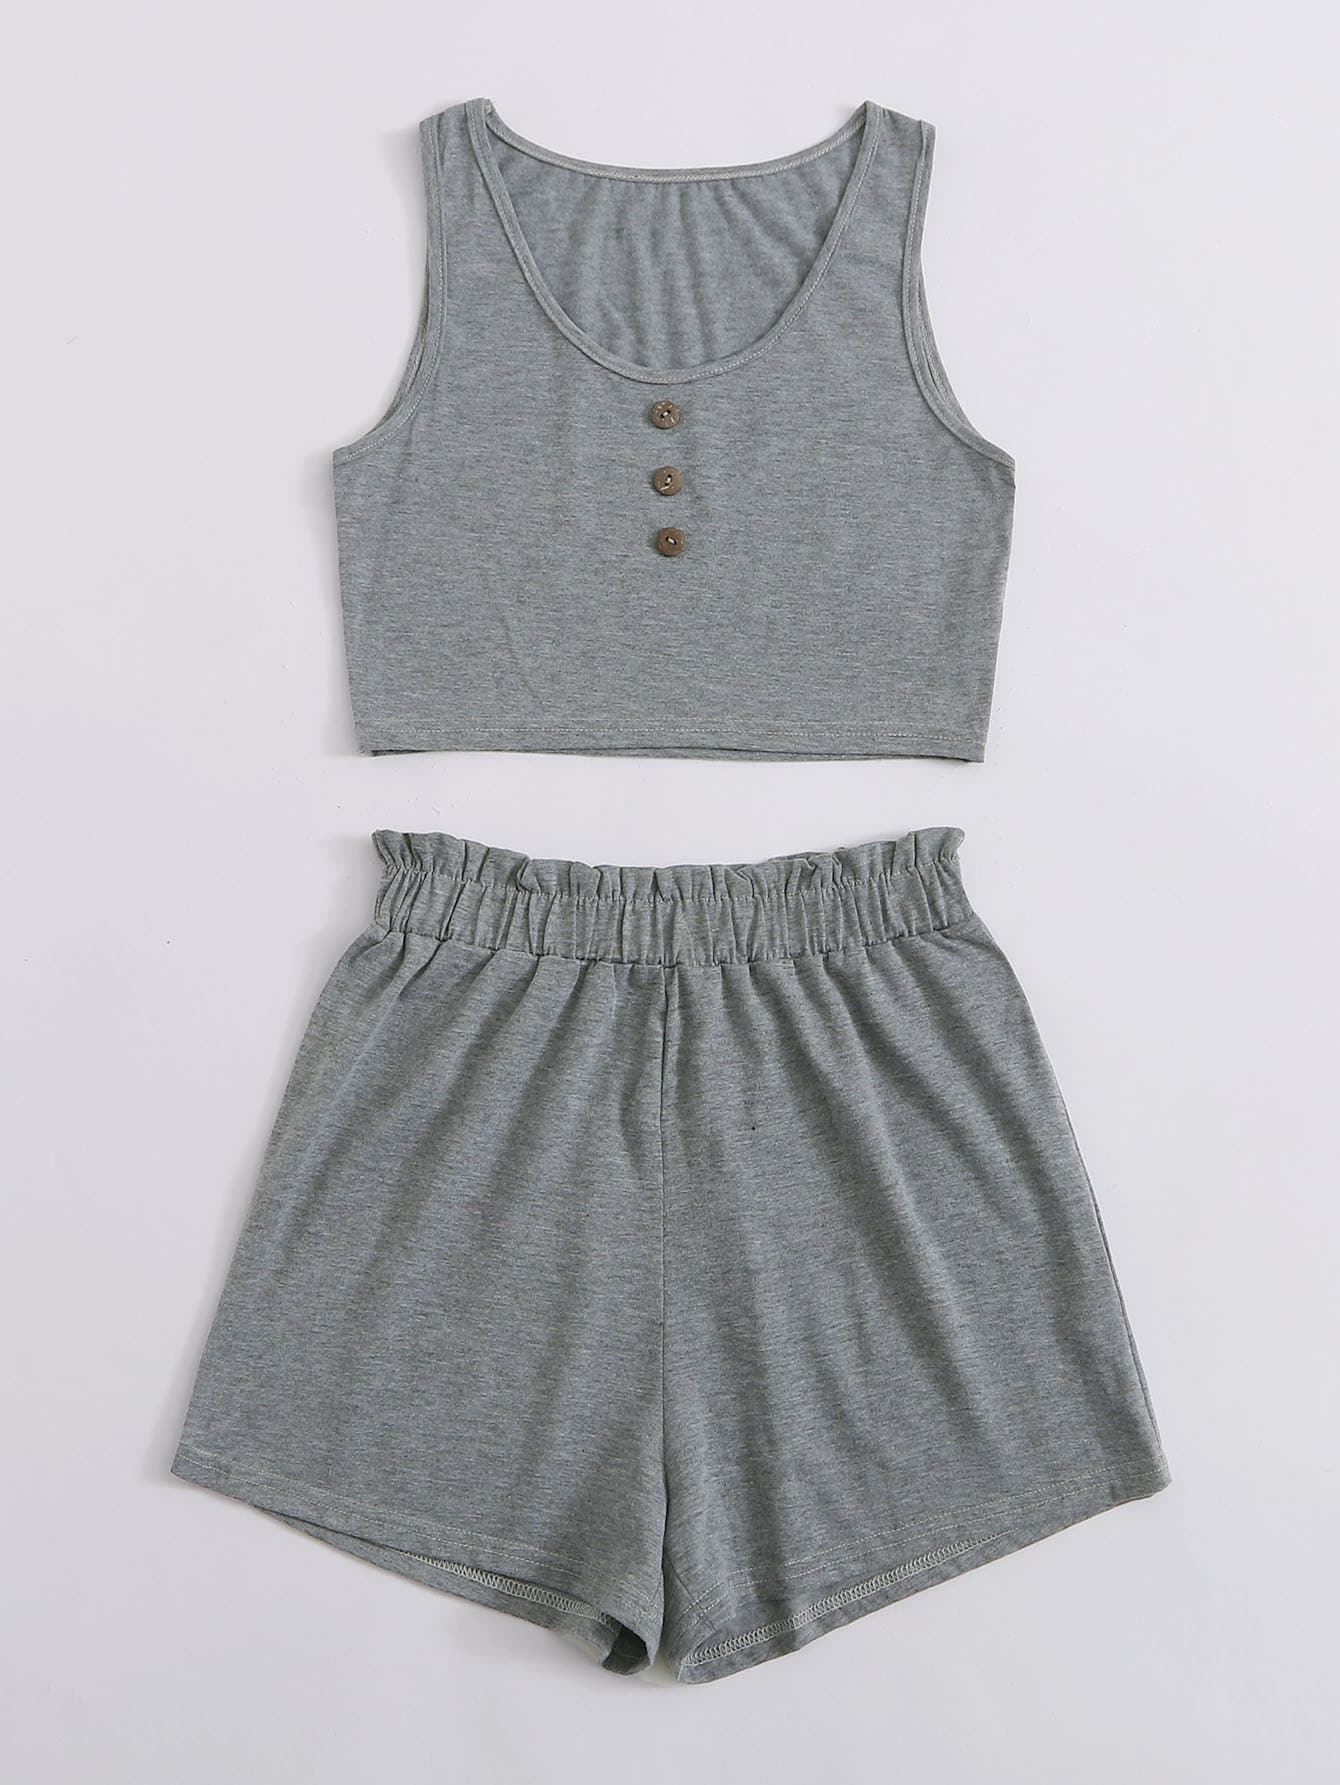 Button Front Crop Tank Top With Shorts - FLJ CORPORATIONS